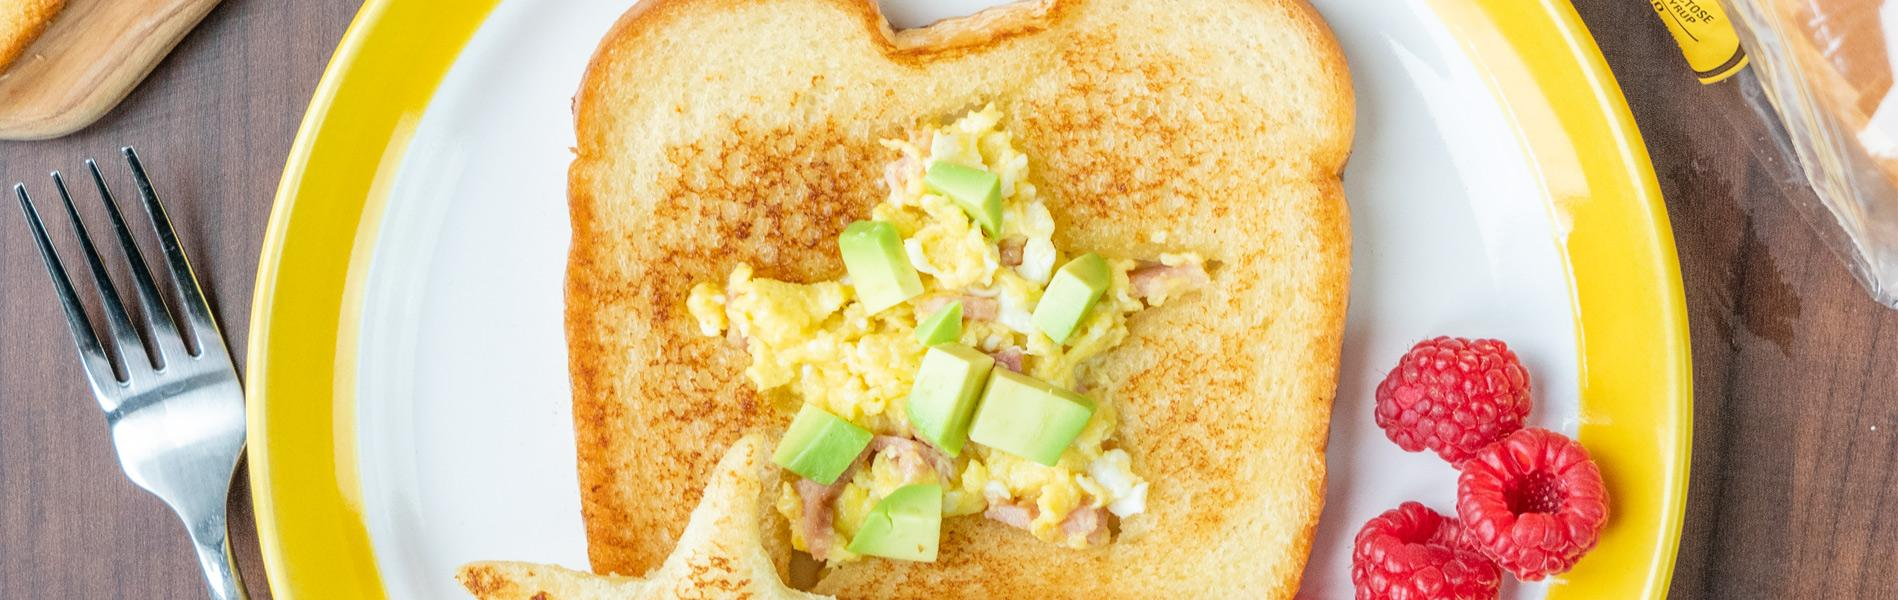 Bread with a star-shaped hole in the center, filled with scrambled eggs, ham, avocado and cheese